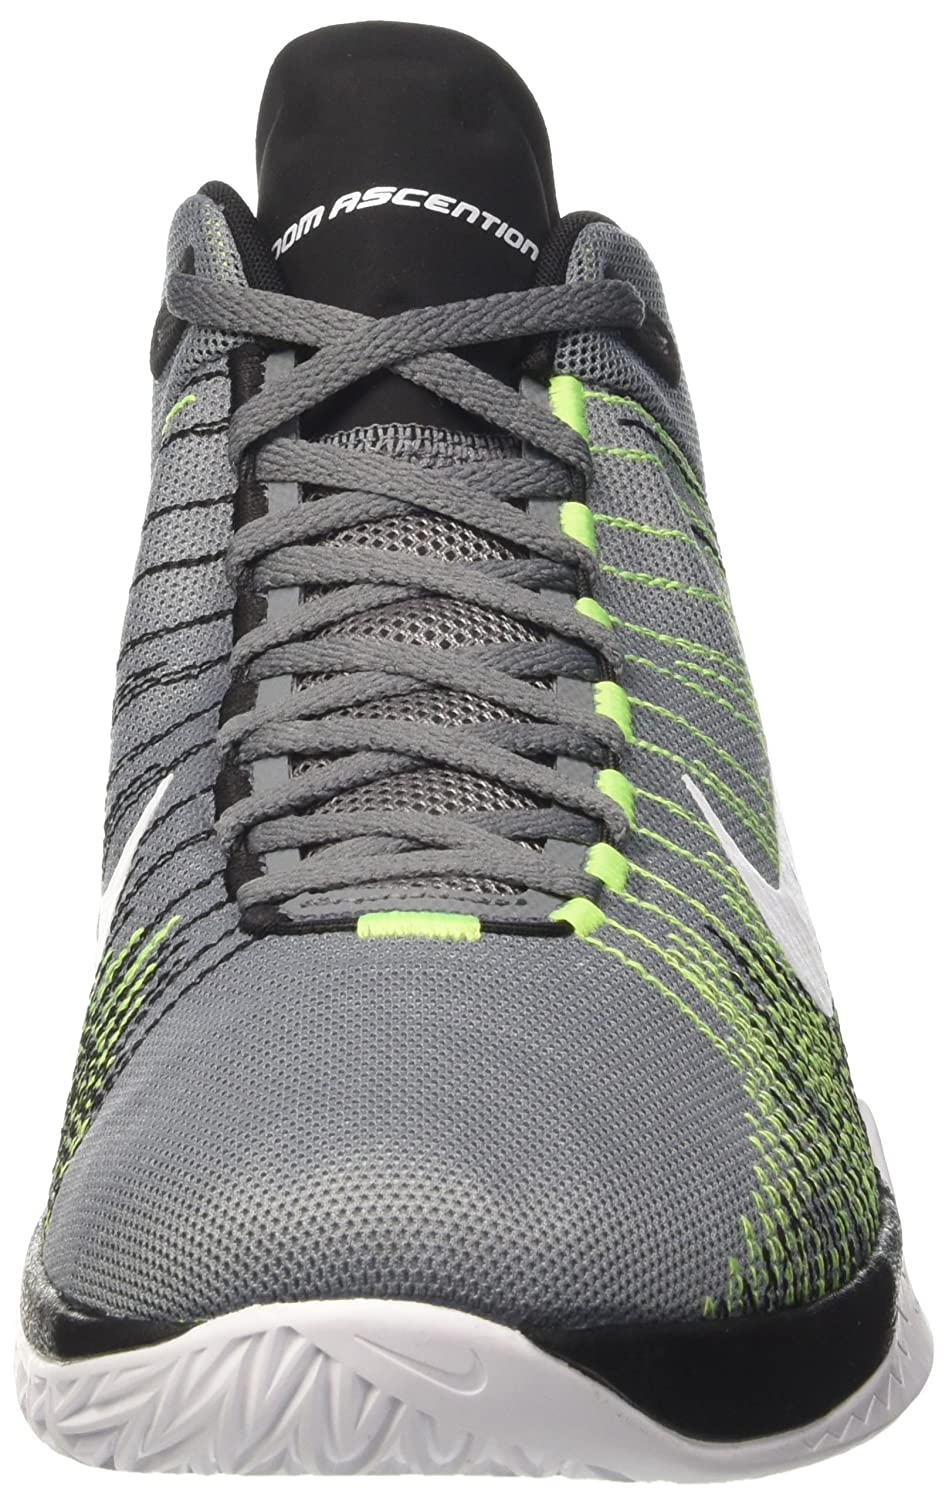 Nike Zoom Ascention Basketball Shoes: Buy Online at Low Prices in India -  Amazon.in